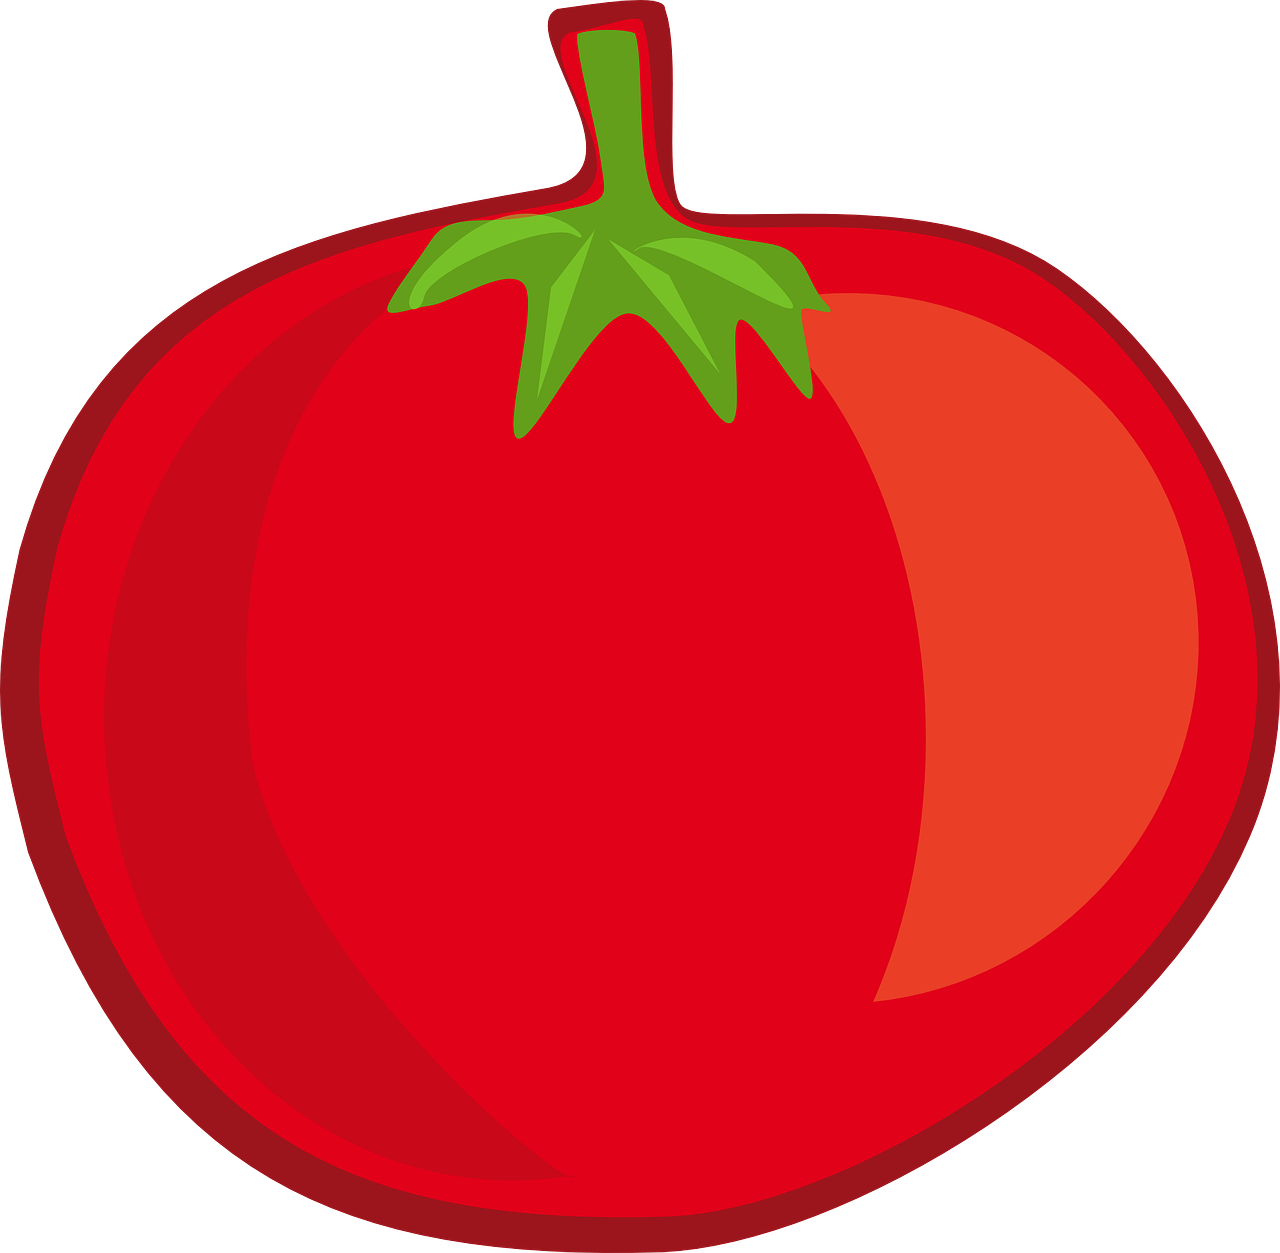 tomato fruit vegetable free photo